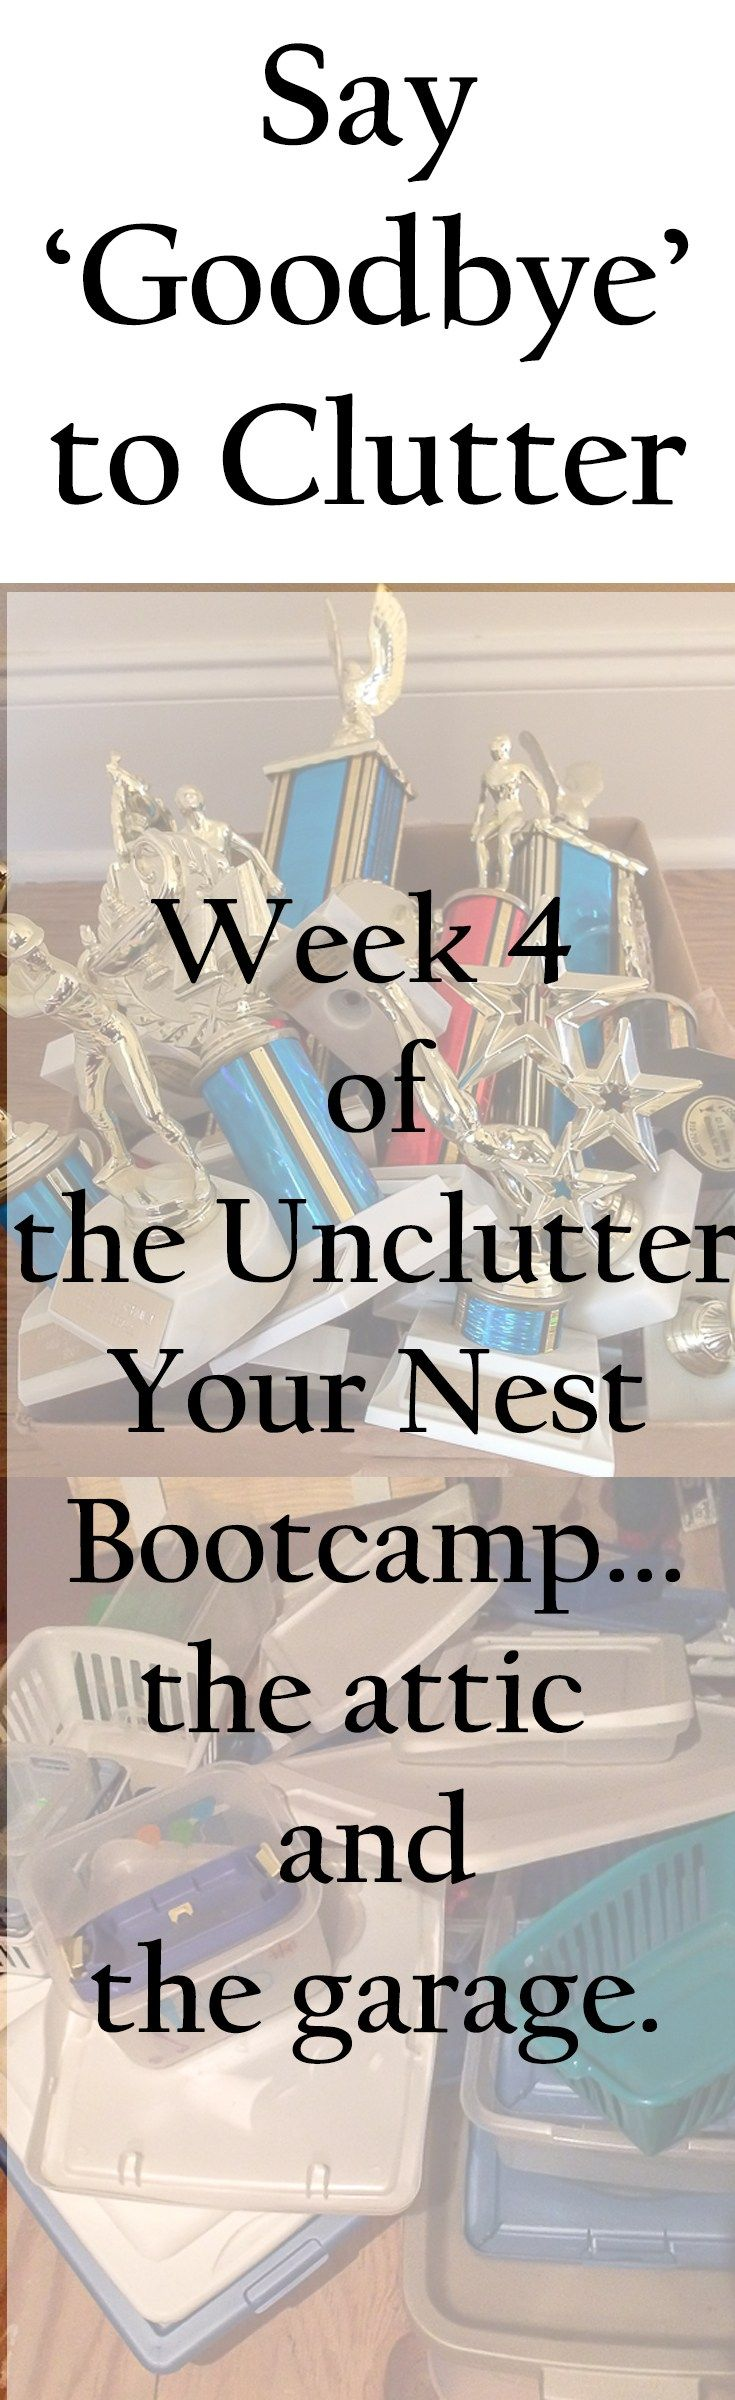 The last week of the Unclutter your Nest Bootcamp 2016 and we are focused on the attic and the garage. All in all, I removed 1,330 pounds of clutter from my home over the 4-week period.